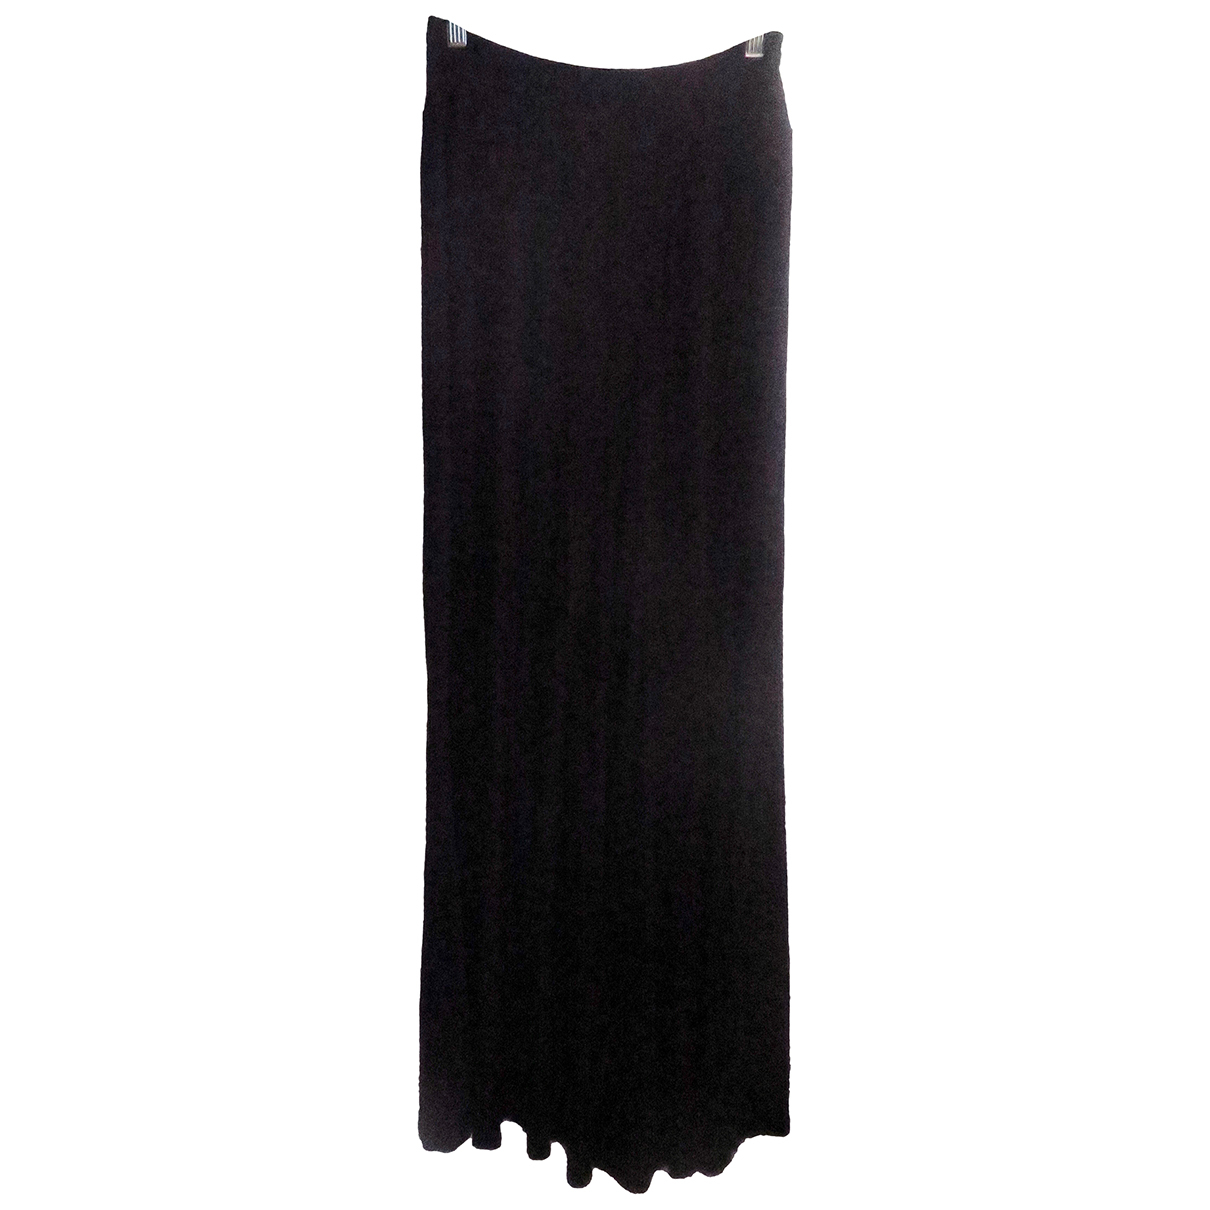 Vince \N Black skirt for Women 4 US